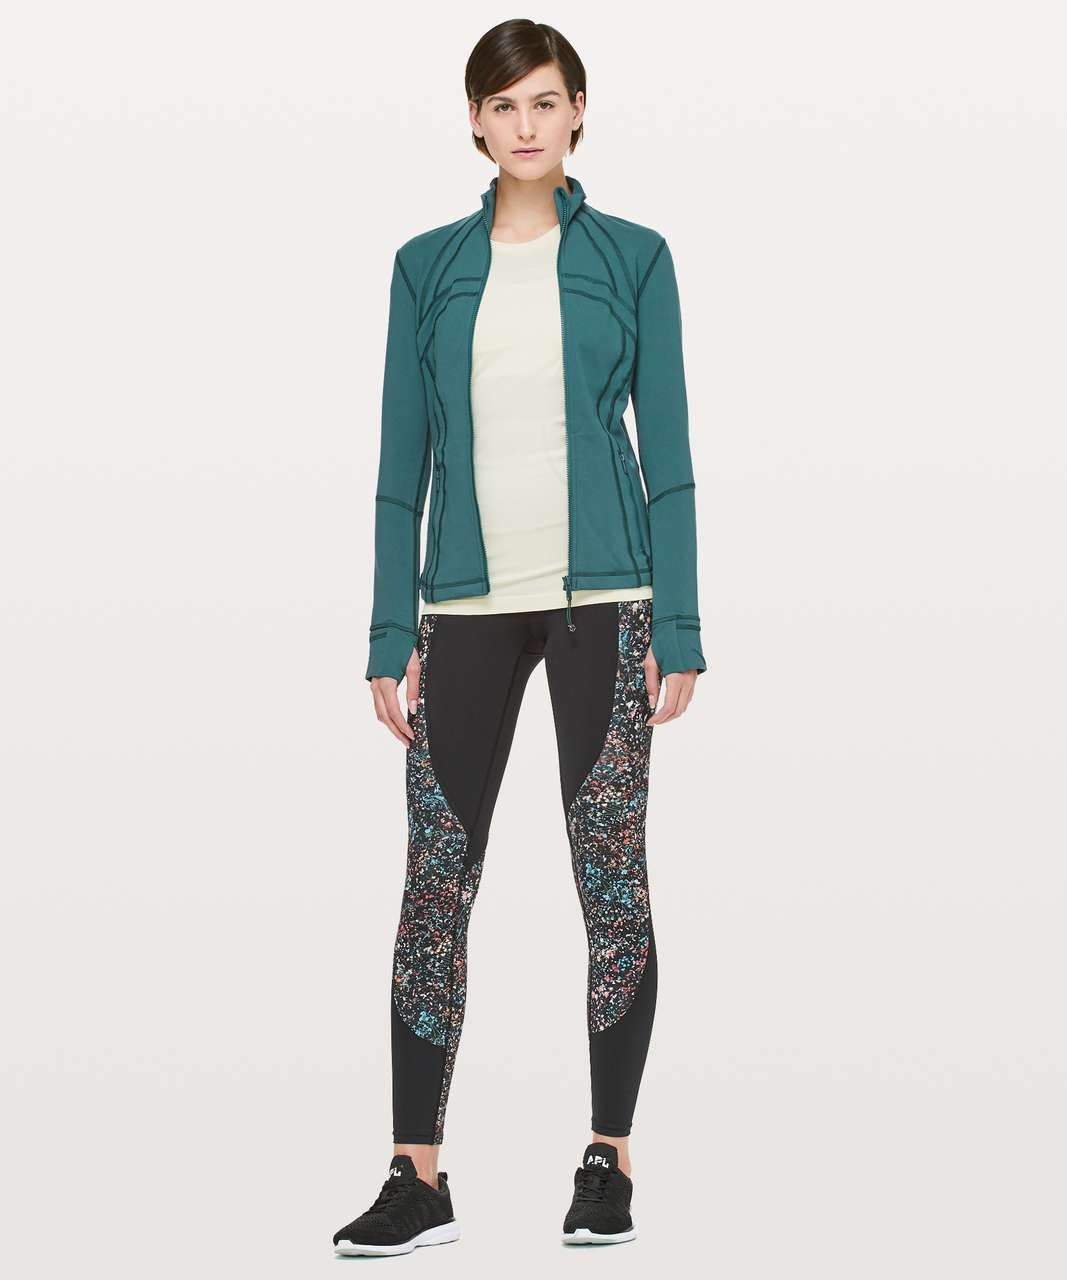 Lululemon Define Jacket - Green Jasper